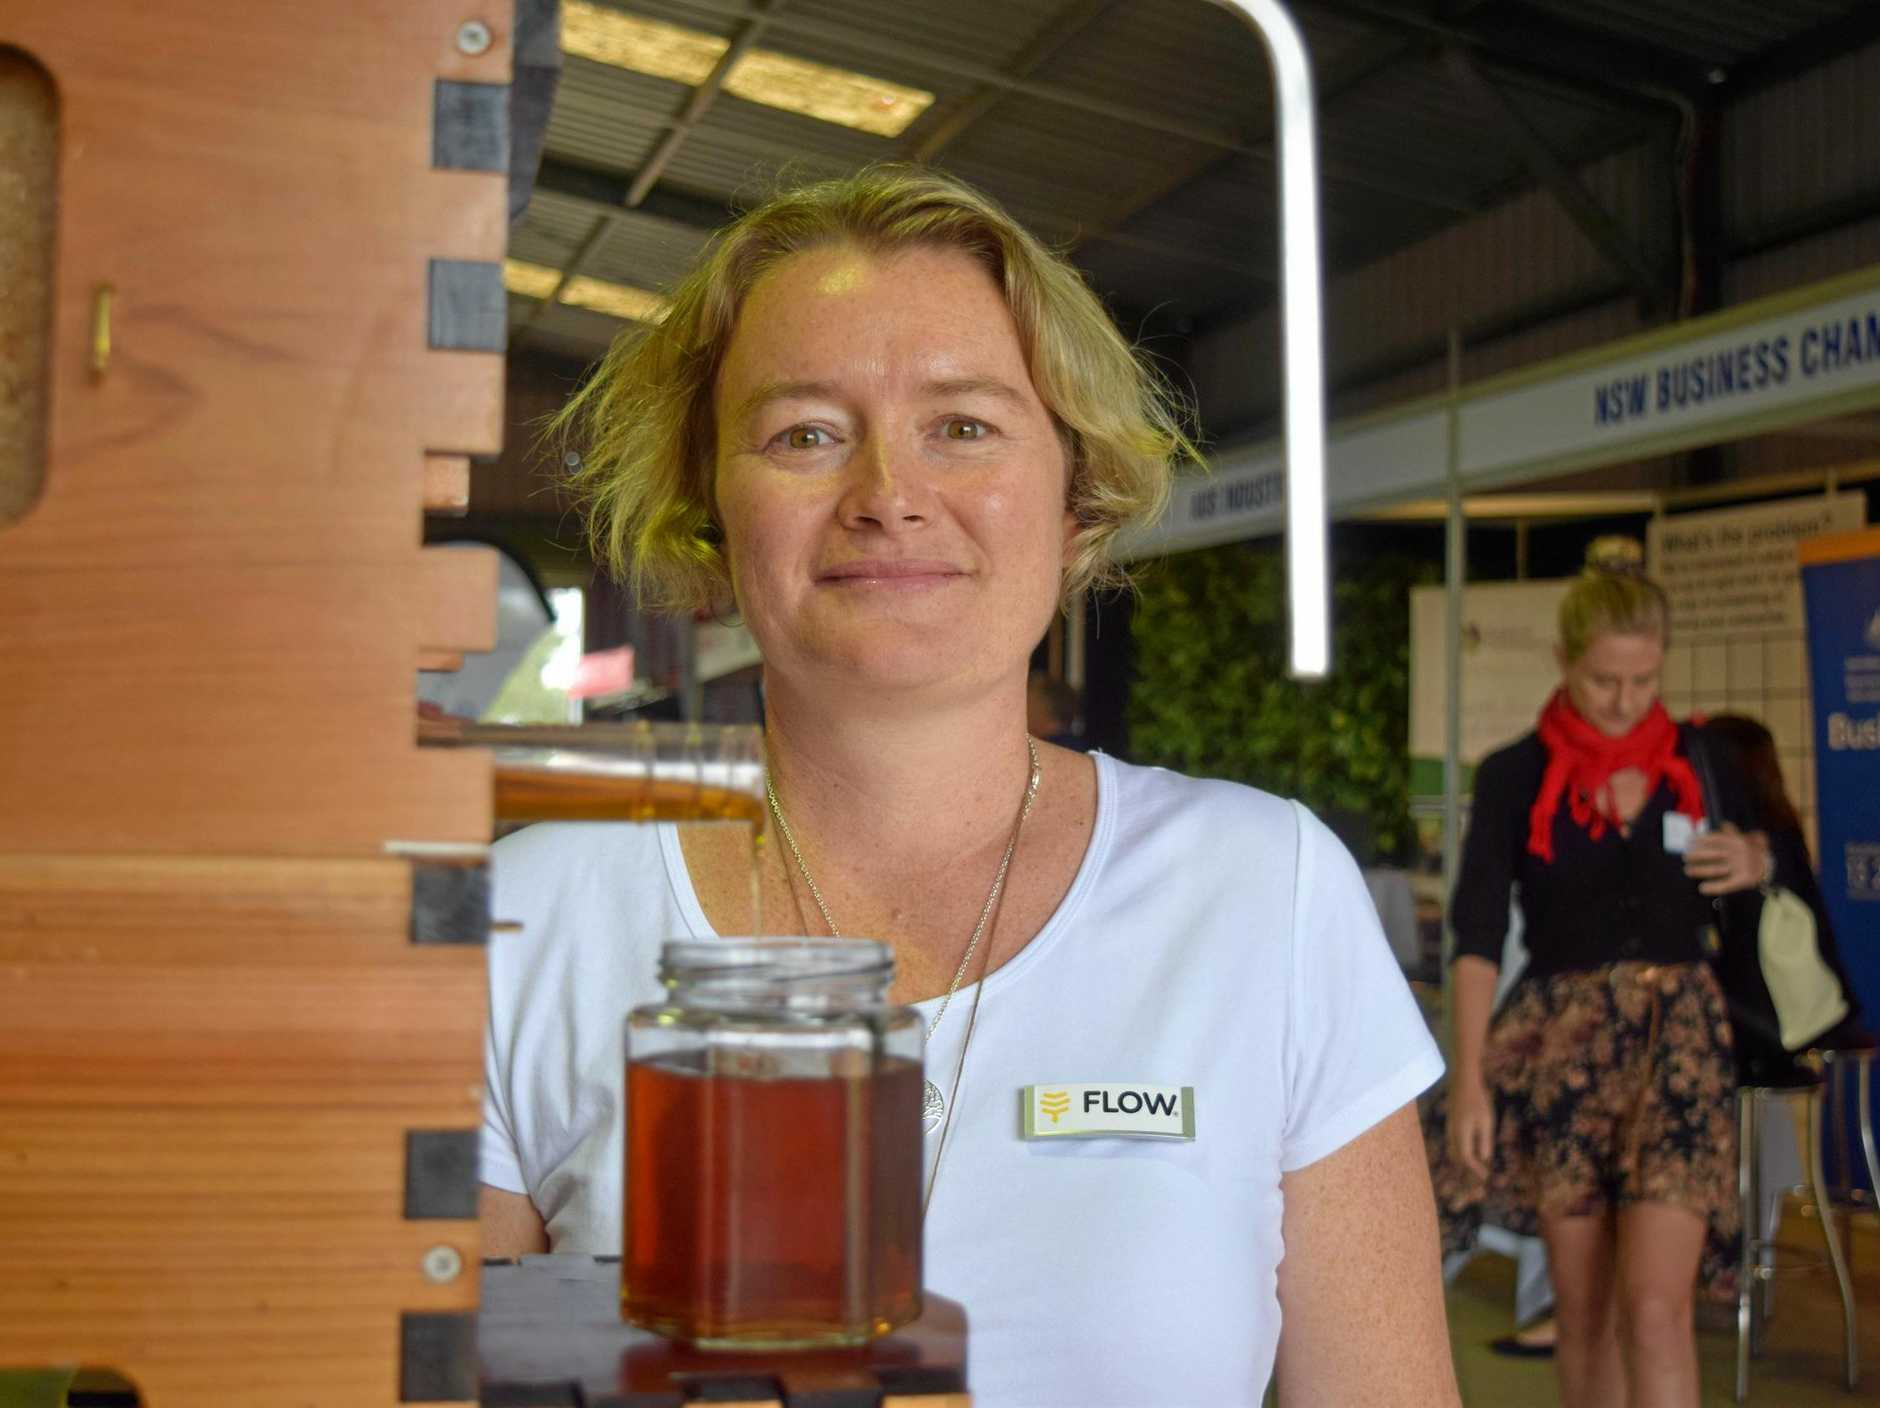 PRIMEX: Emily Grace from Flow Hive was showcasing the company's latest invention, the Flow Hive 2. Flow Hive won the Primex innovation scholarship and will attend the NZ Field Days next month.